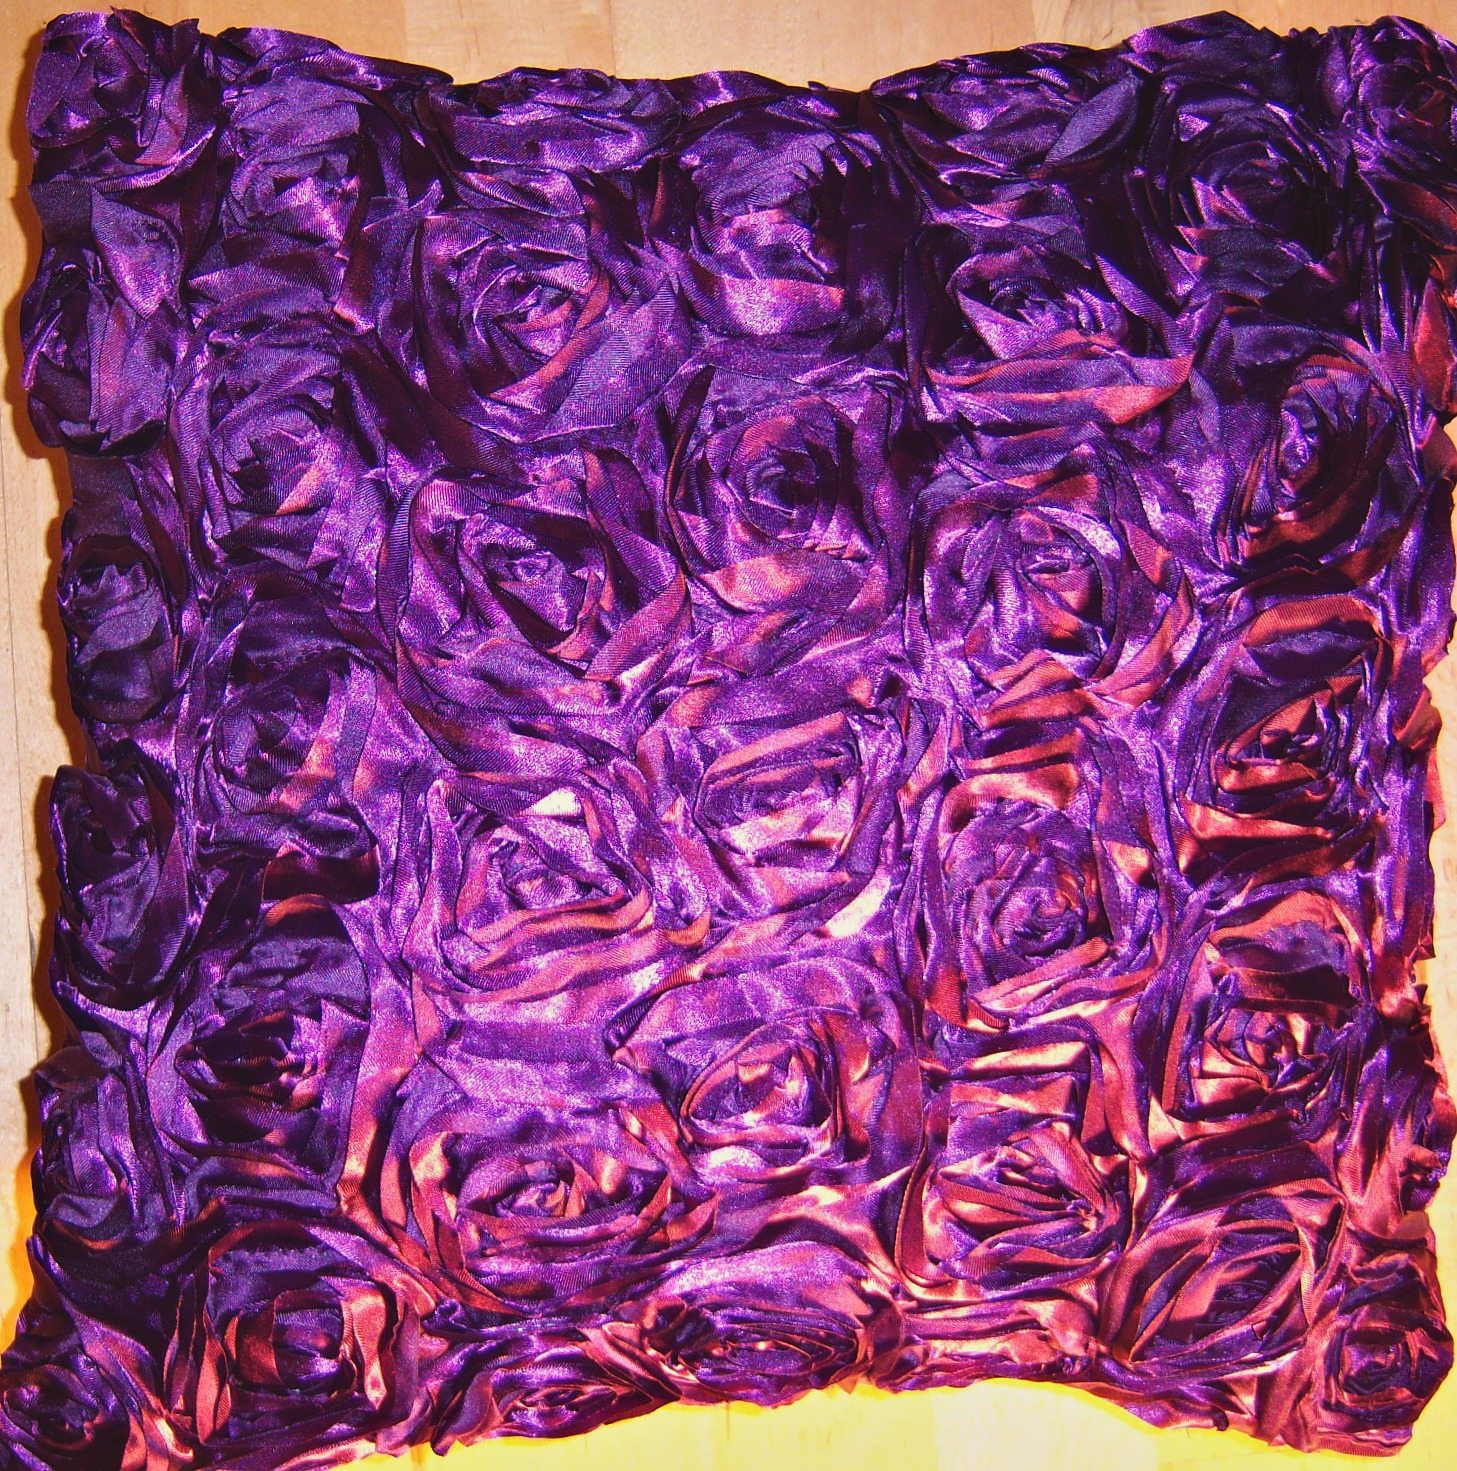 The Home Furnishings Company Purple Rose Tafffeta Style Cushion 43x43 cms only £9.99  each